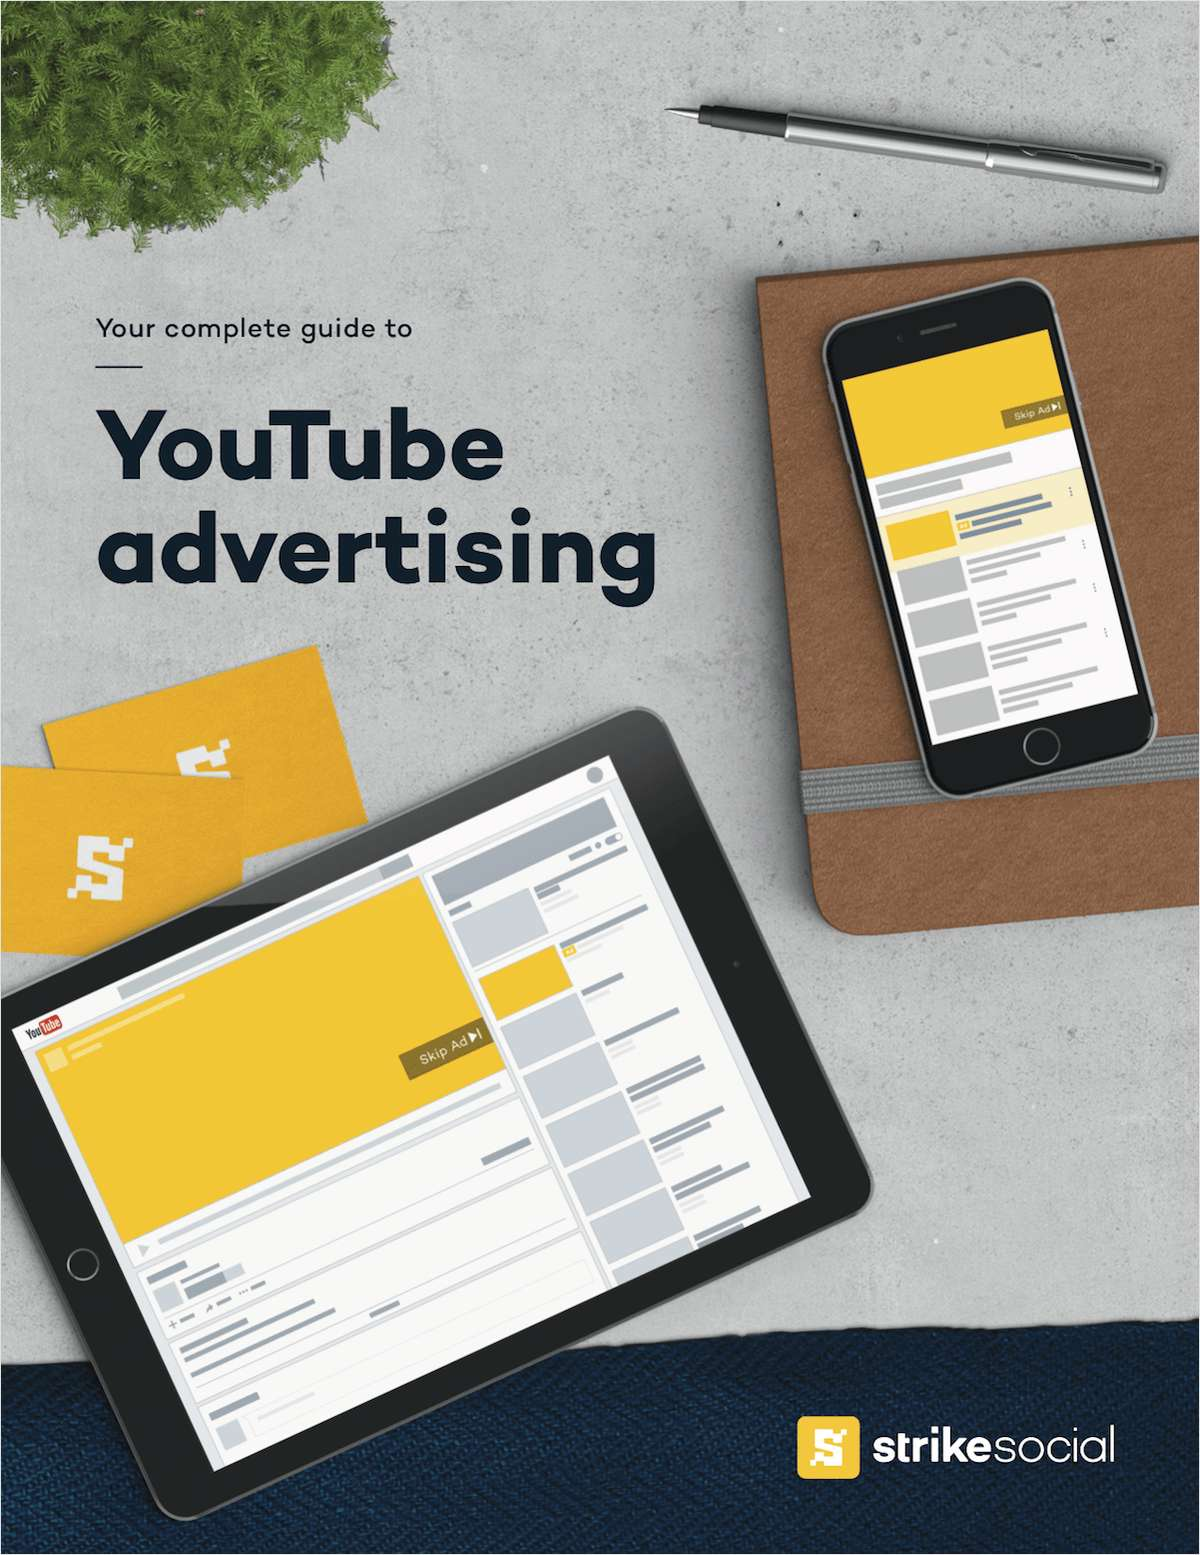 Delivering results with YouTube advertising